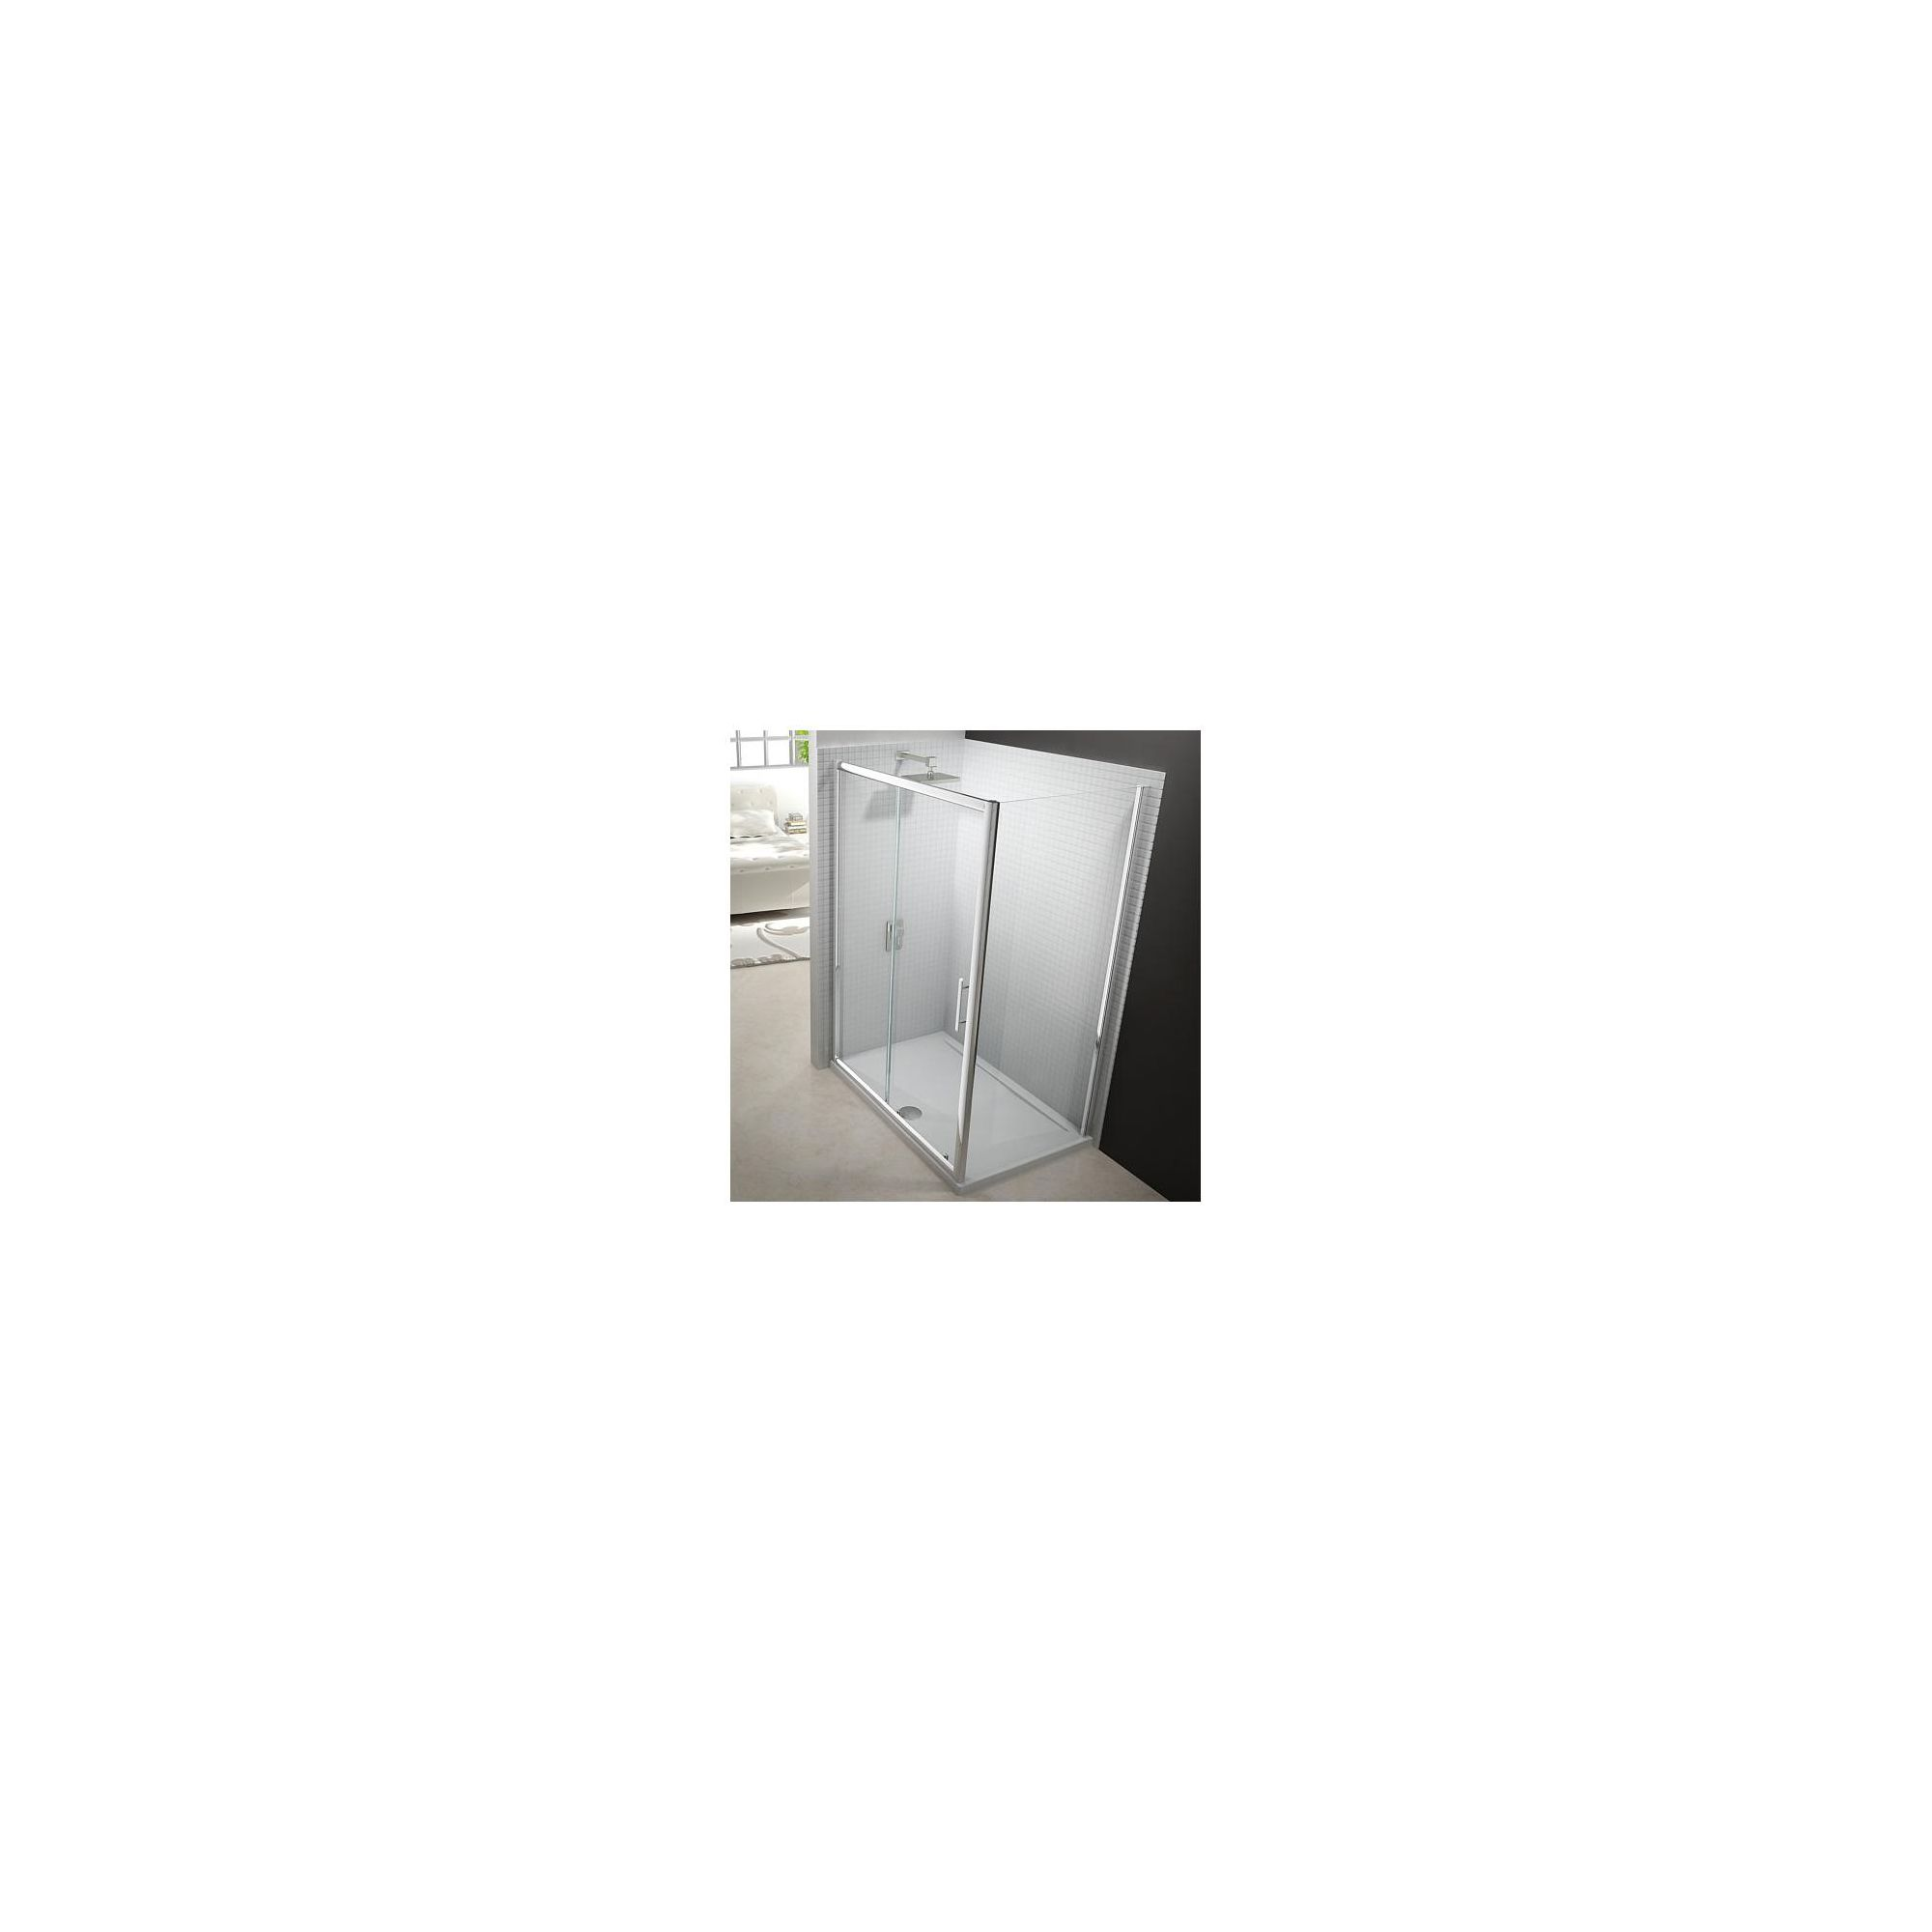 Merlyn Series 6 Sliding Shower Door, 1000mm Wide, Chrome Frame, 6mm Glass at Tesco Direct